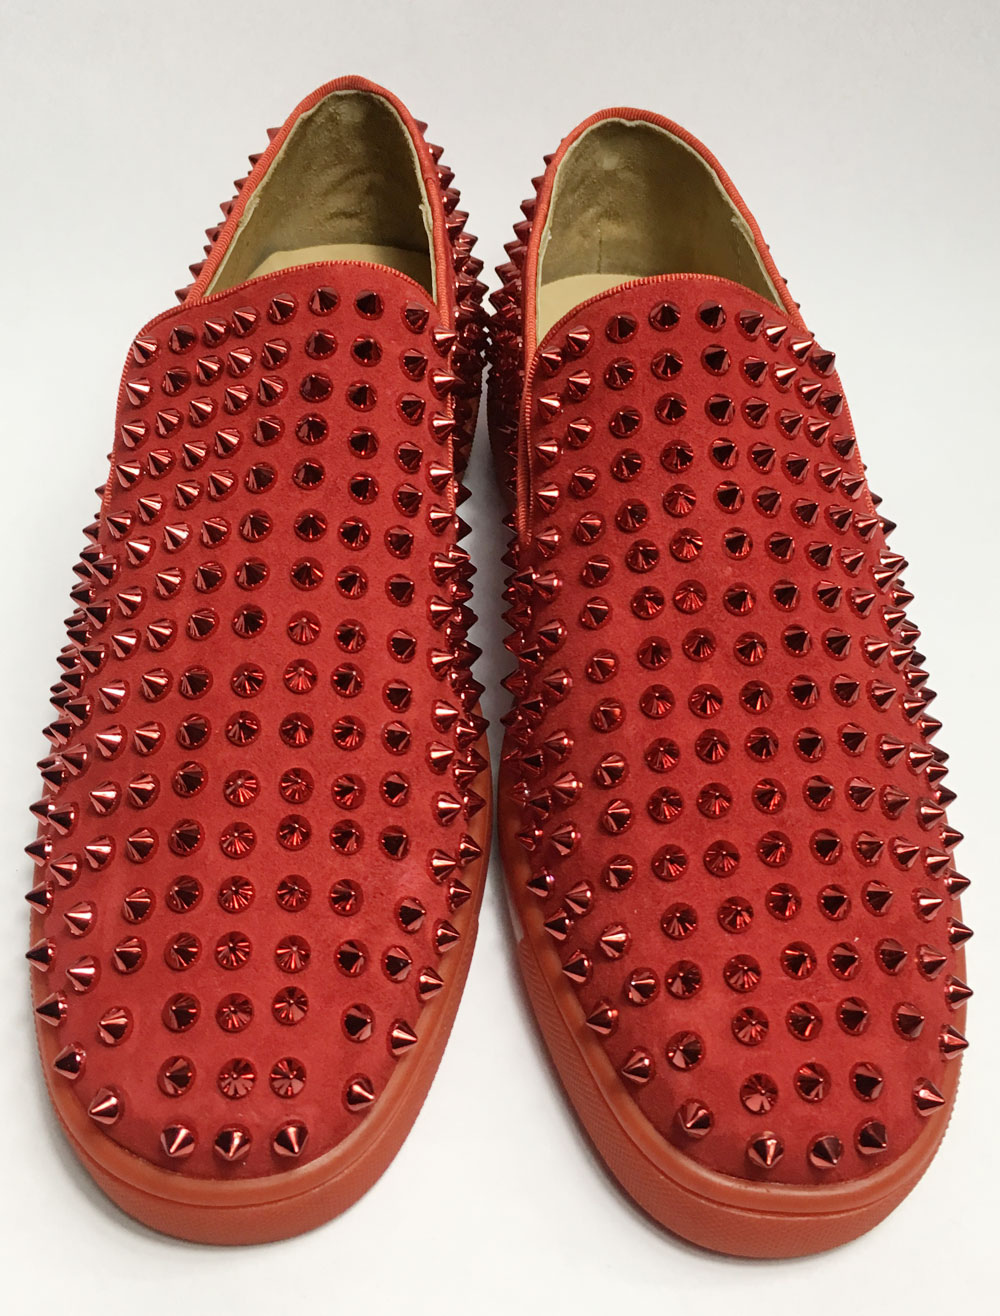 Buy Red Loafers Leather Spike Shoes Men Round Toe Flat Slip on Shoes for $76.49 in Milanoo store